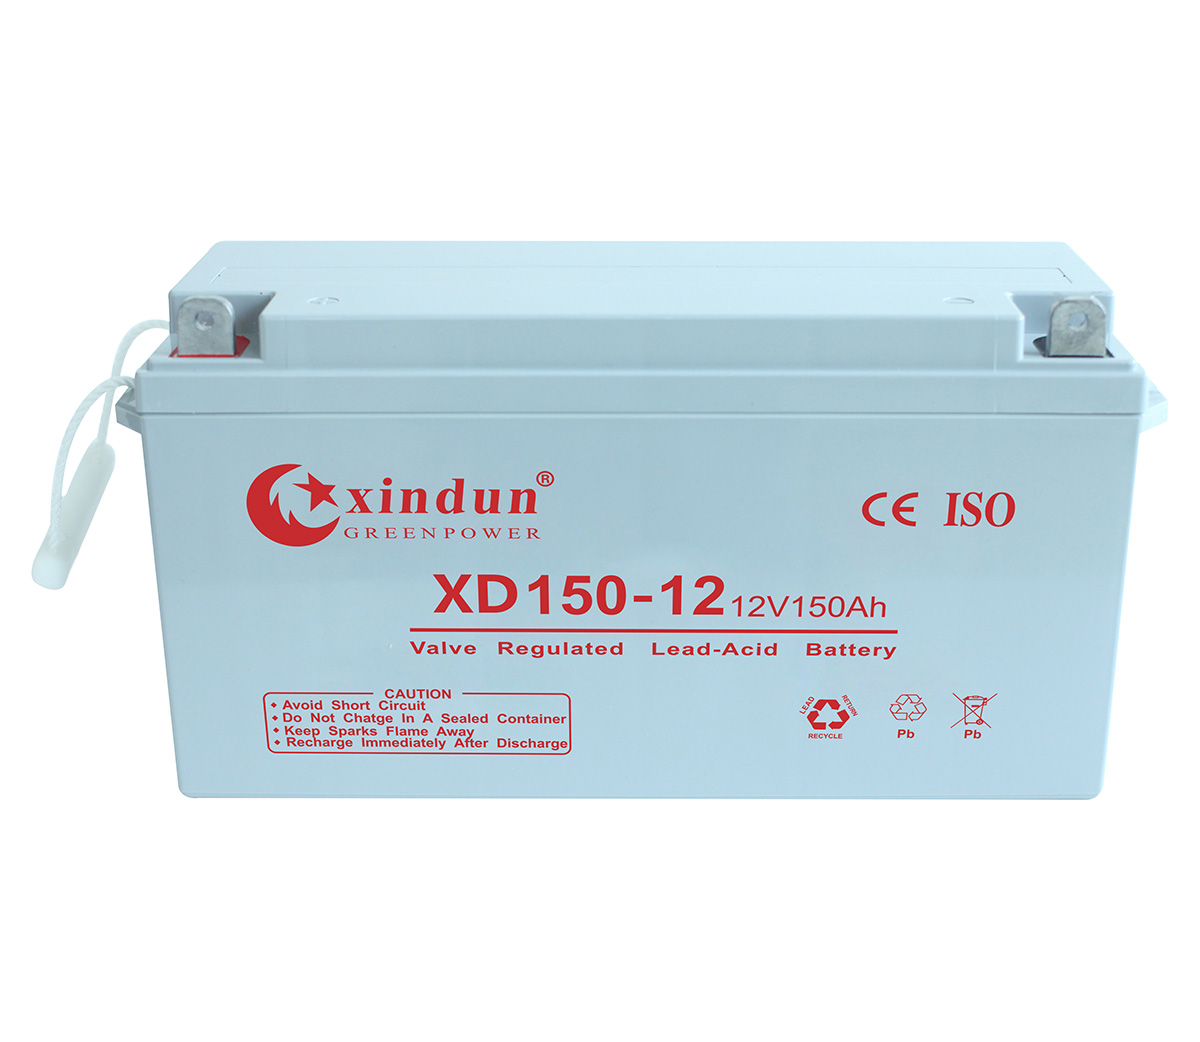 XD150-12 Battery (12V150Ah)